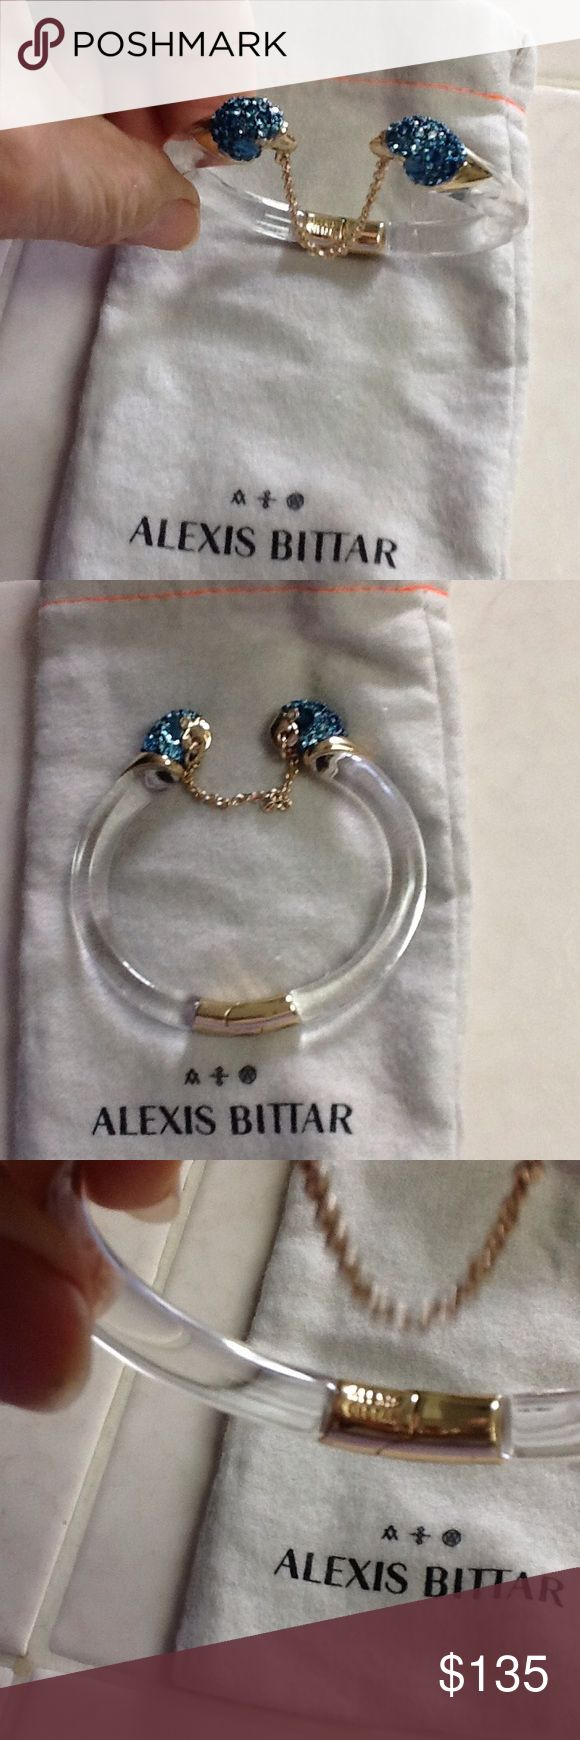 WEEKEND SALE💝 RARE ALEXIS BITTAR PARROT BRACELET Lovely, unique bracelet by Alexis Bittar .  Lucite hinged band, chain with two parrots heads of Swarovski crystals.  Alexis Bittar signature on hinge.  New, never worn. Alexis Bittar Jewelry Bracelets